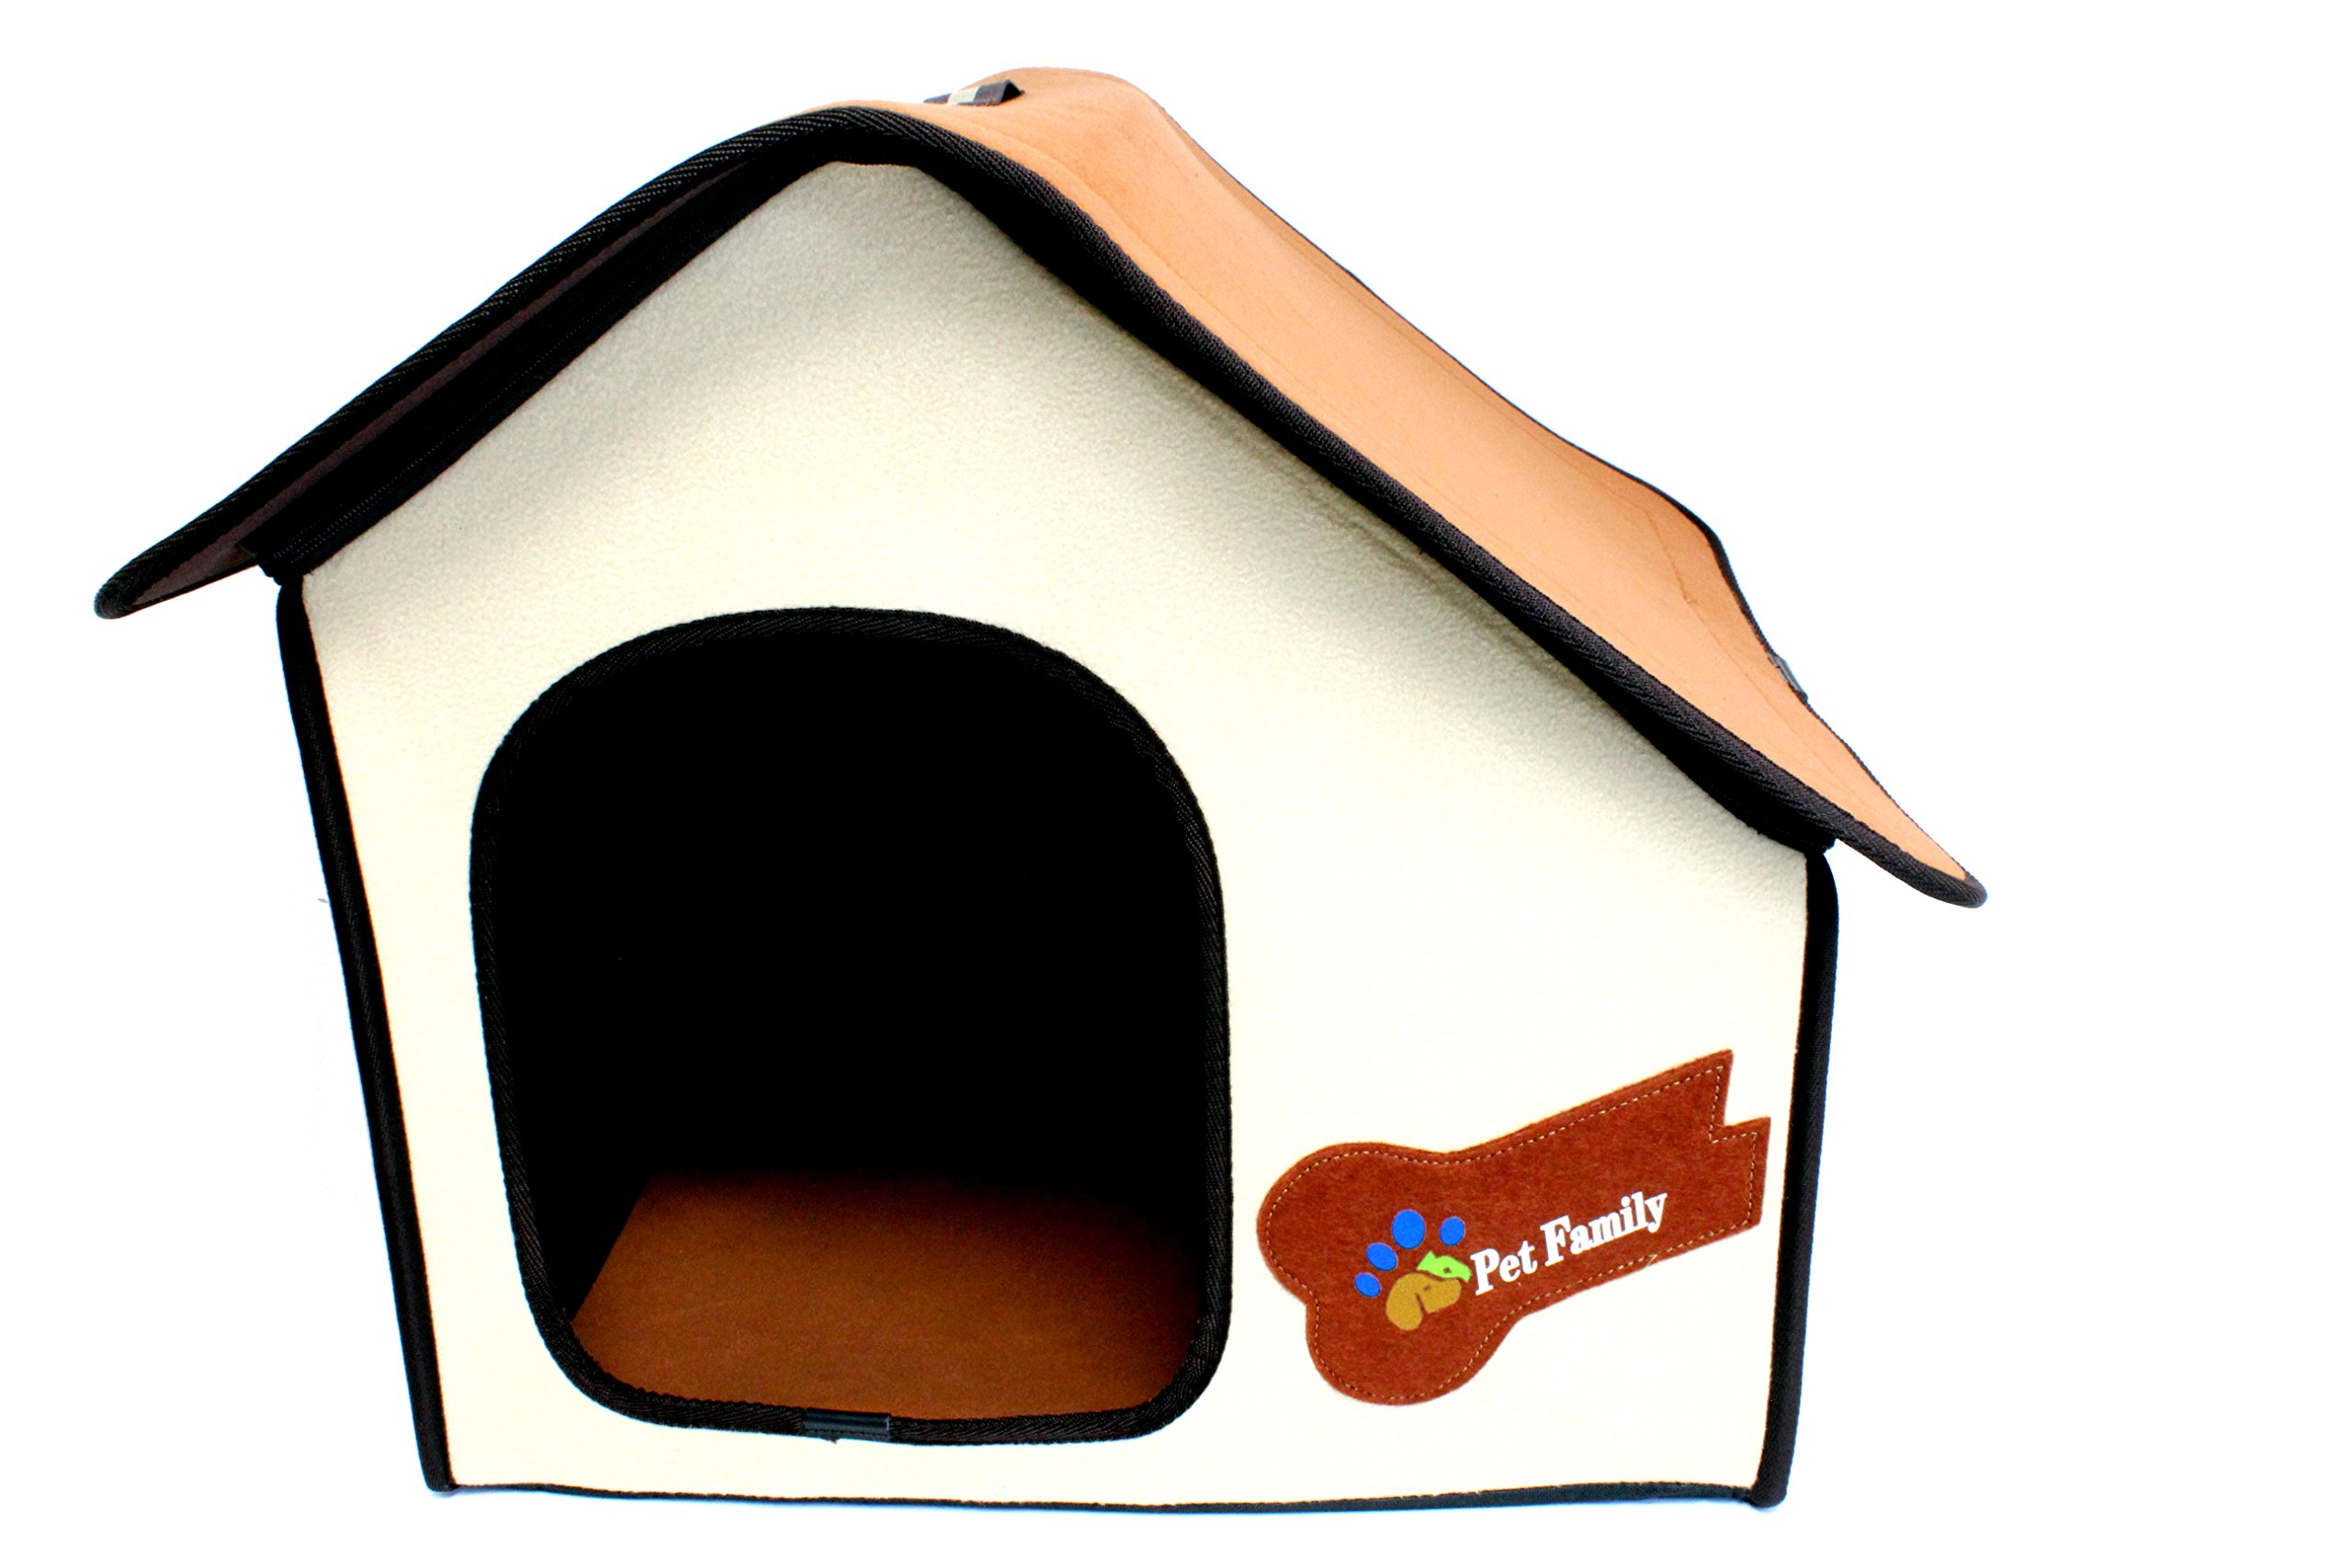 Royal Brands Portable Pet House - Lightweight, Collapsible Dog House - Tan - Perfect for Small Pets - 22'' L x 17'' W x 18'' H